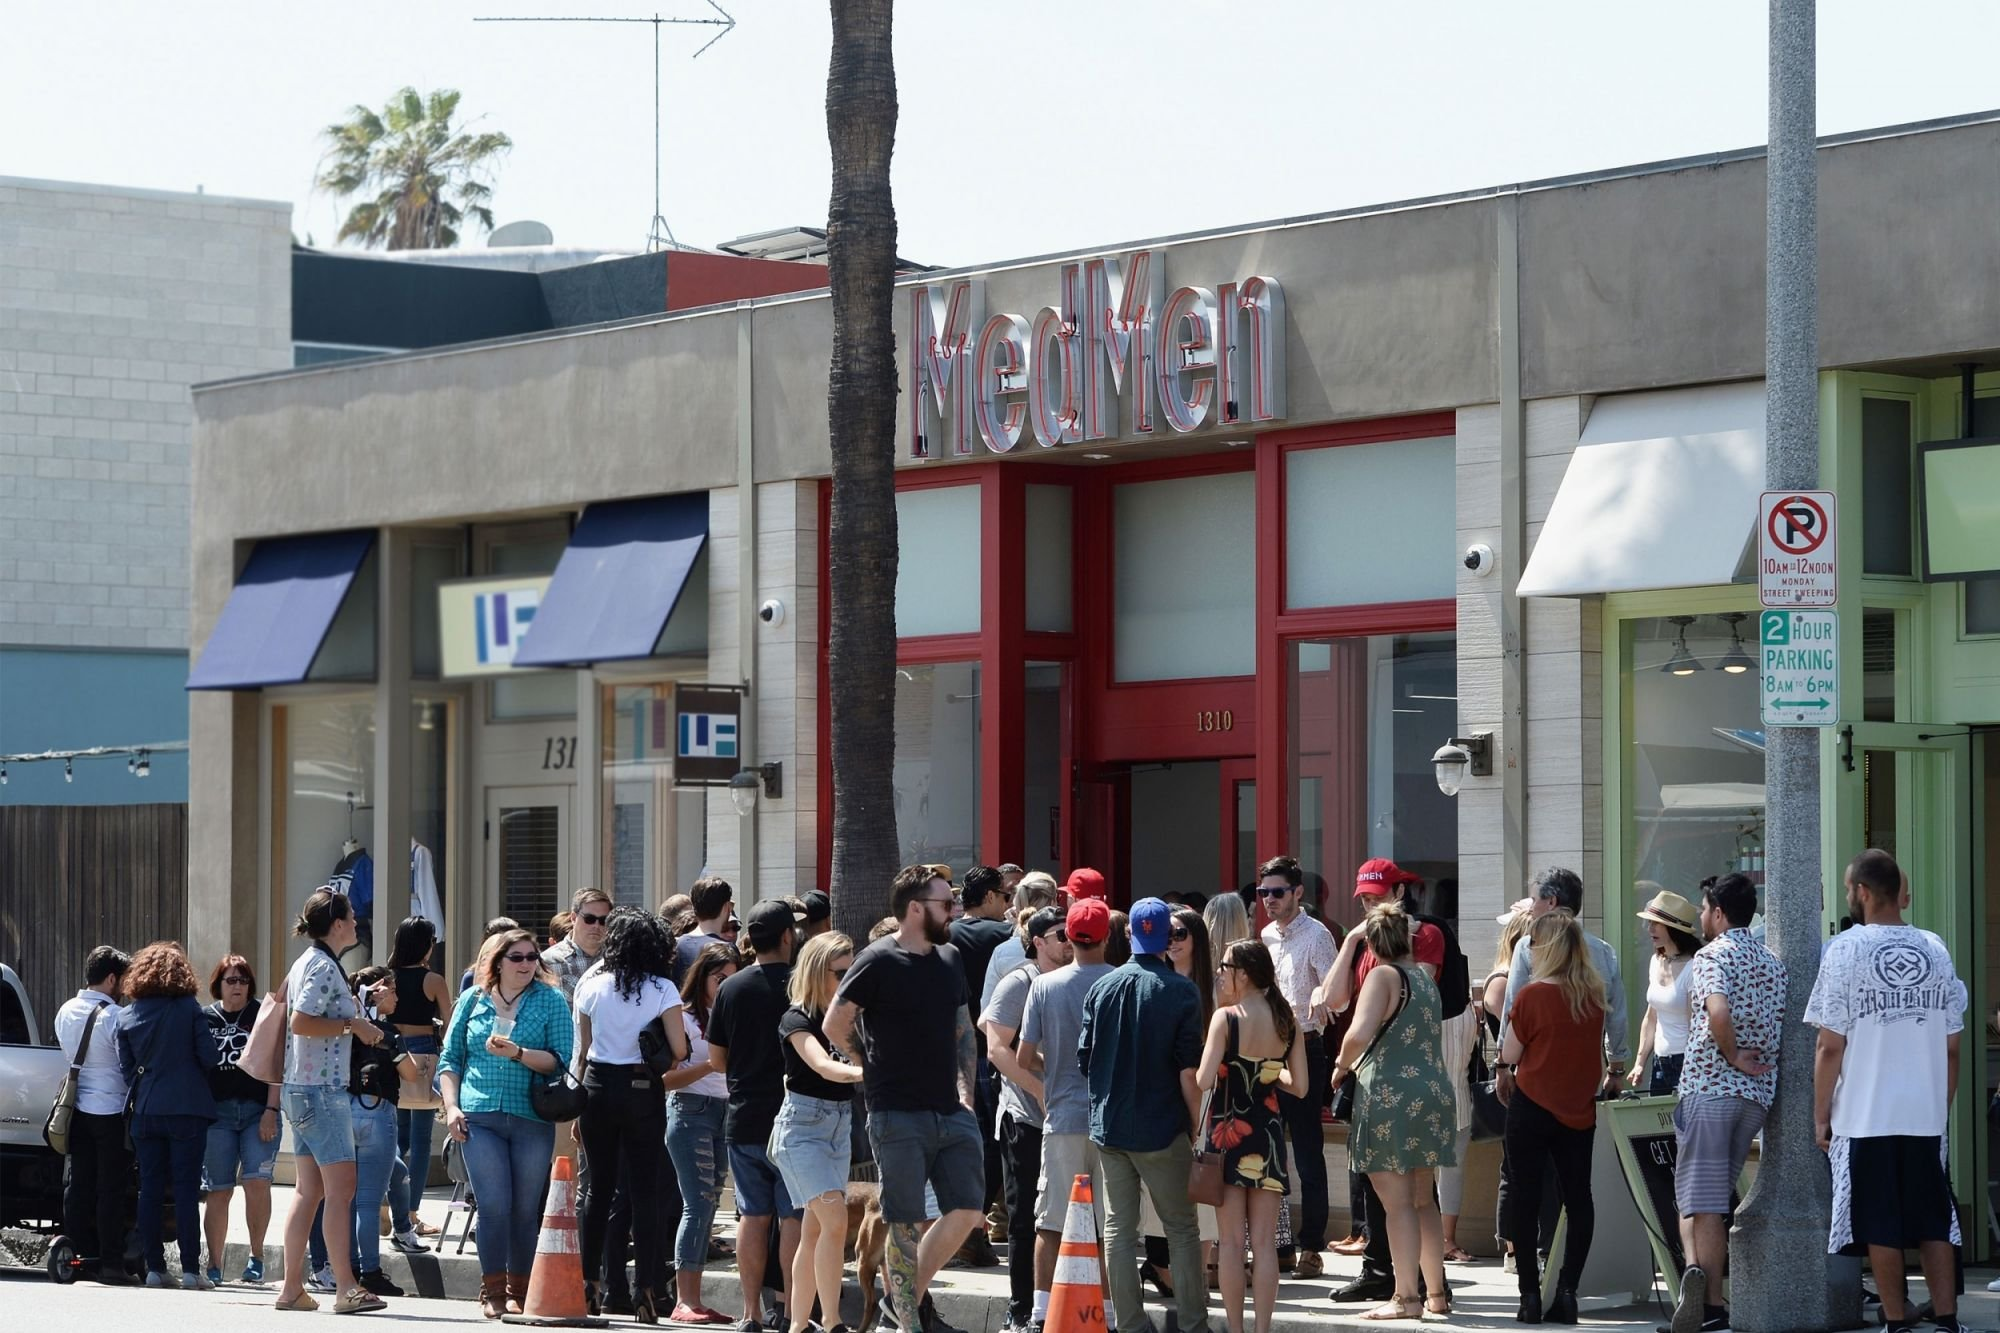 With Higher Prices and Less Product, California Dispensaries Face Angry Customers